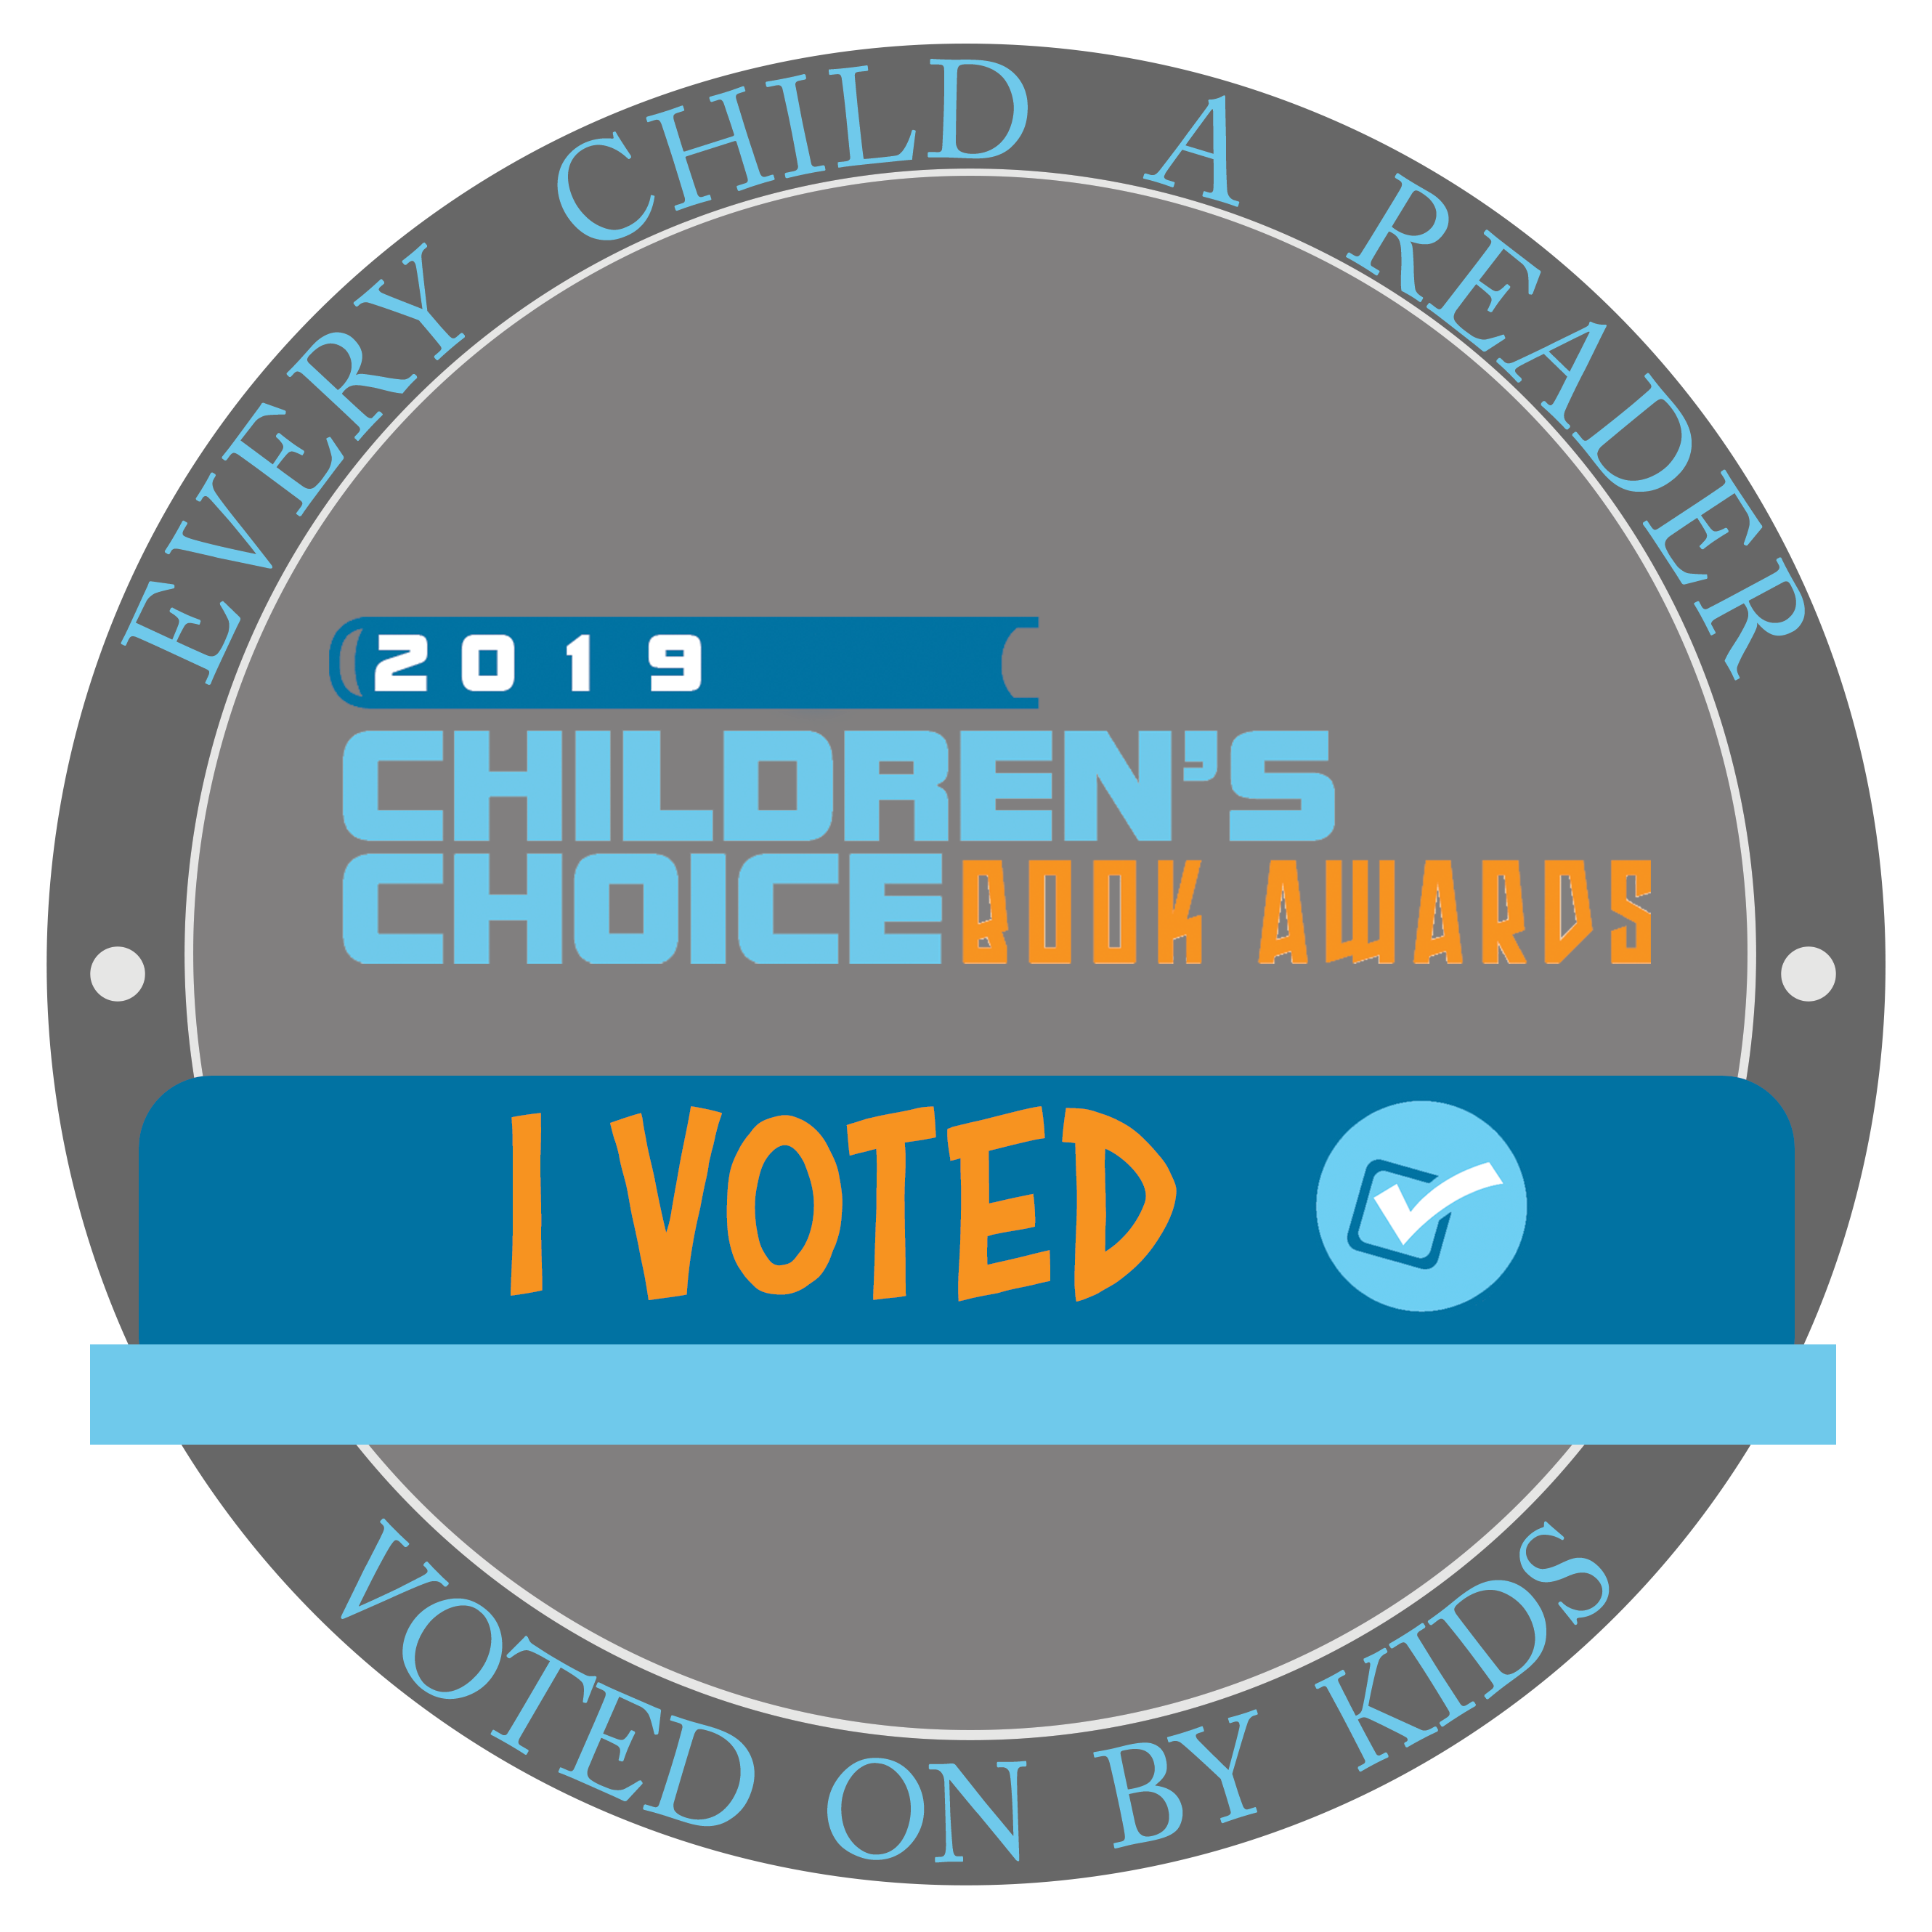 I voted badge